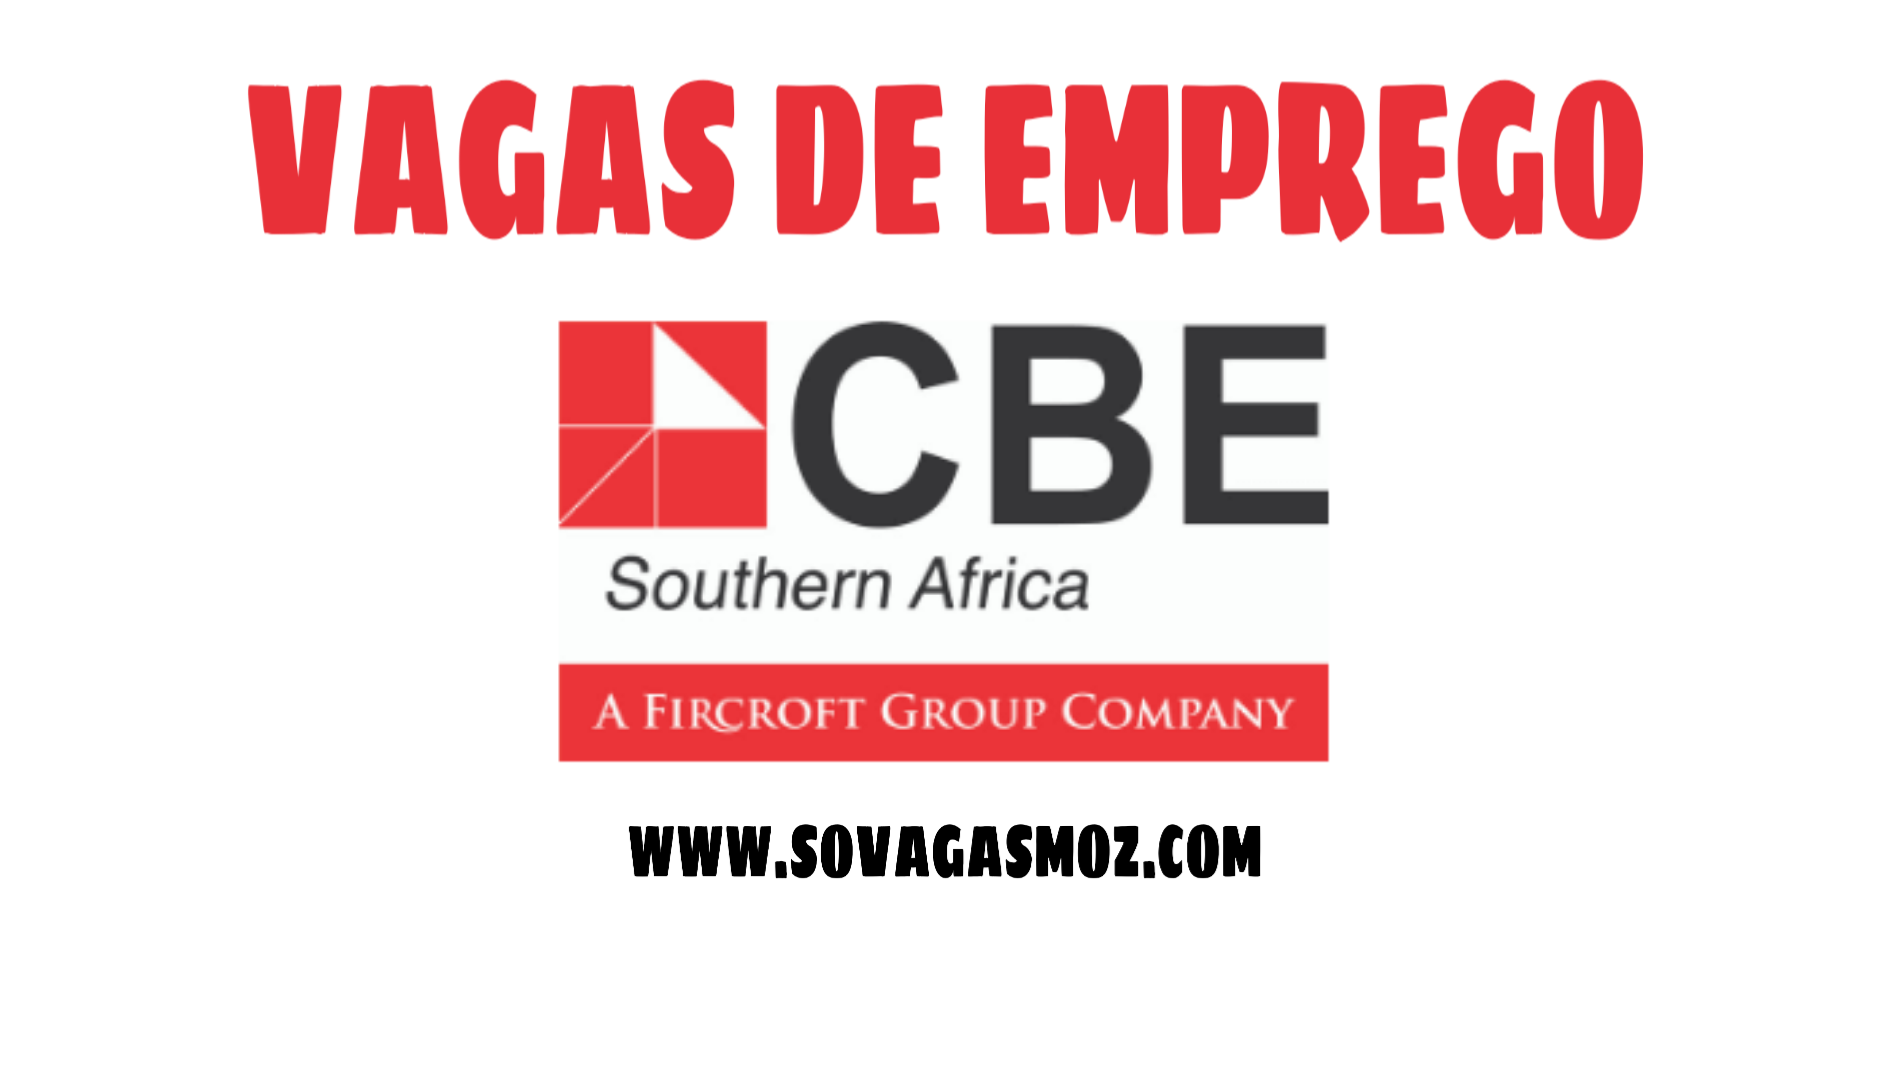 Sovagasmoz - CBE Southern Africa